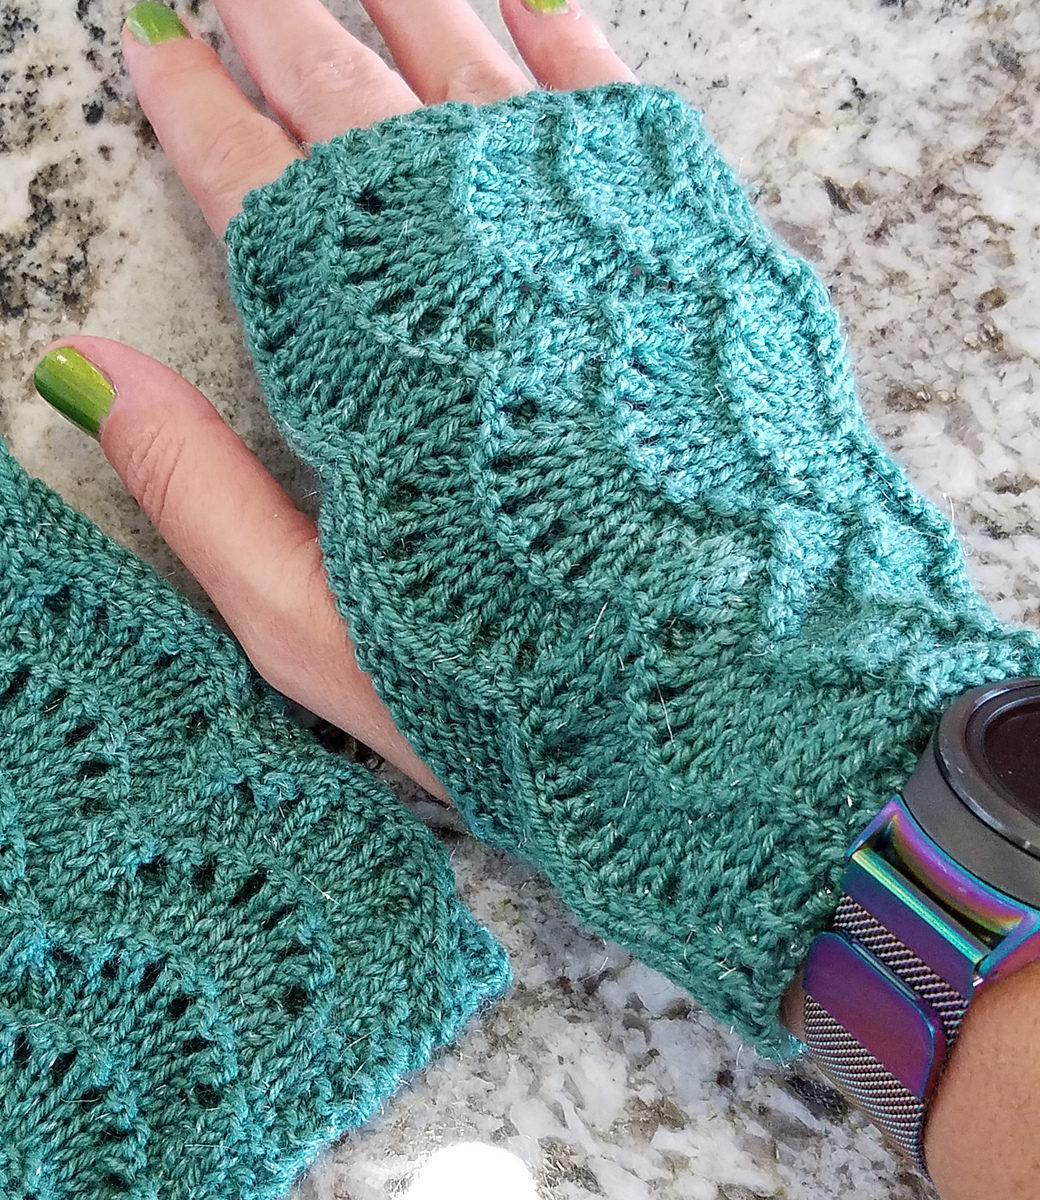 Free Knitting Pattern for Scalloped Fingerless Gloves